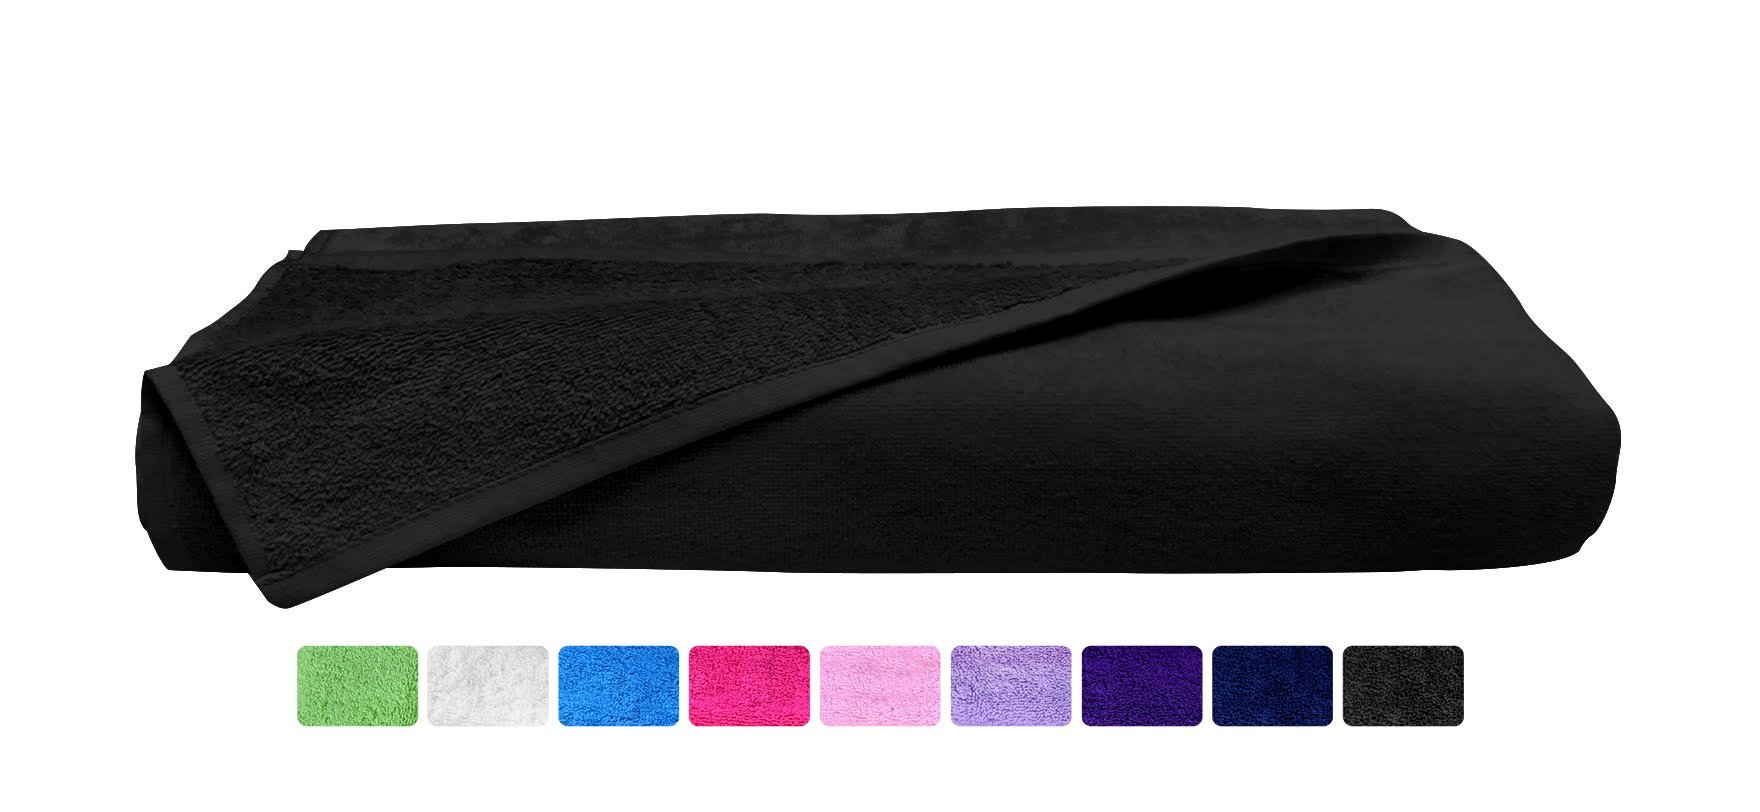 Beach Towel - Extra Large - Black - %100 Soft Turkish Cotton ( 35'' x 59'' ) ( Hotel Spa Bath Collection ) - Absorbent, Quick-Dry Eco Friendly (Black, Pack of 4 Towels)